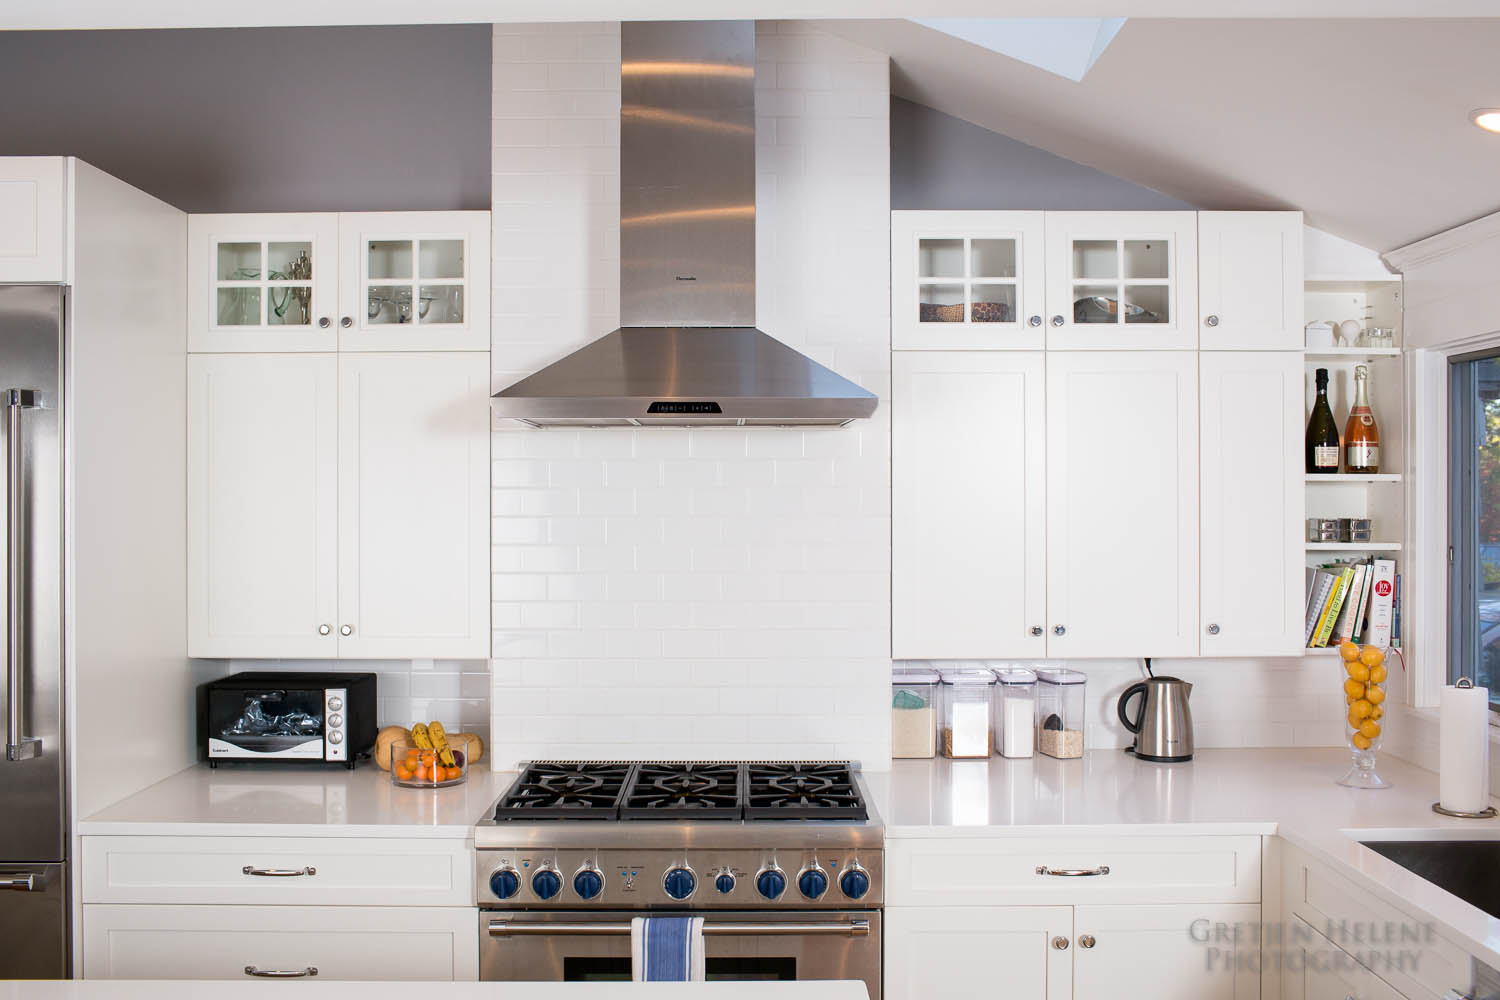 White subway tile is used for the backsplash.